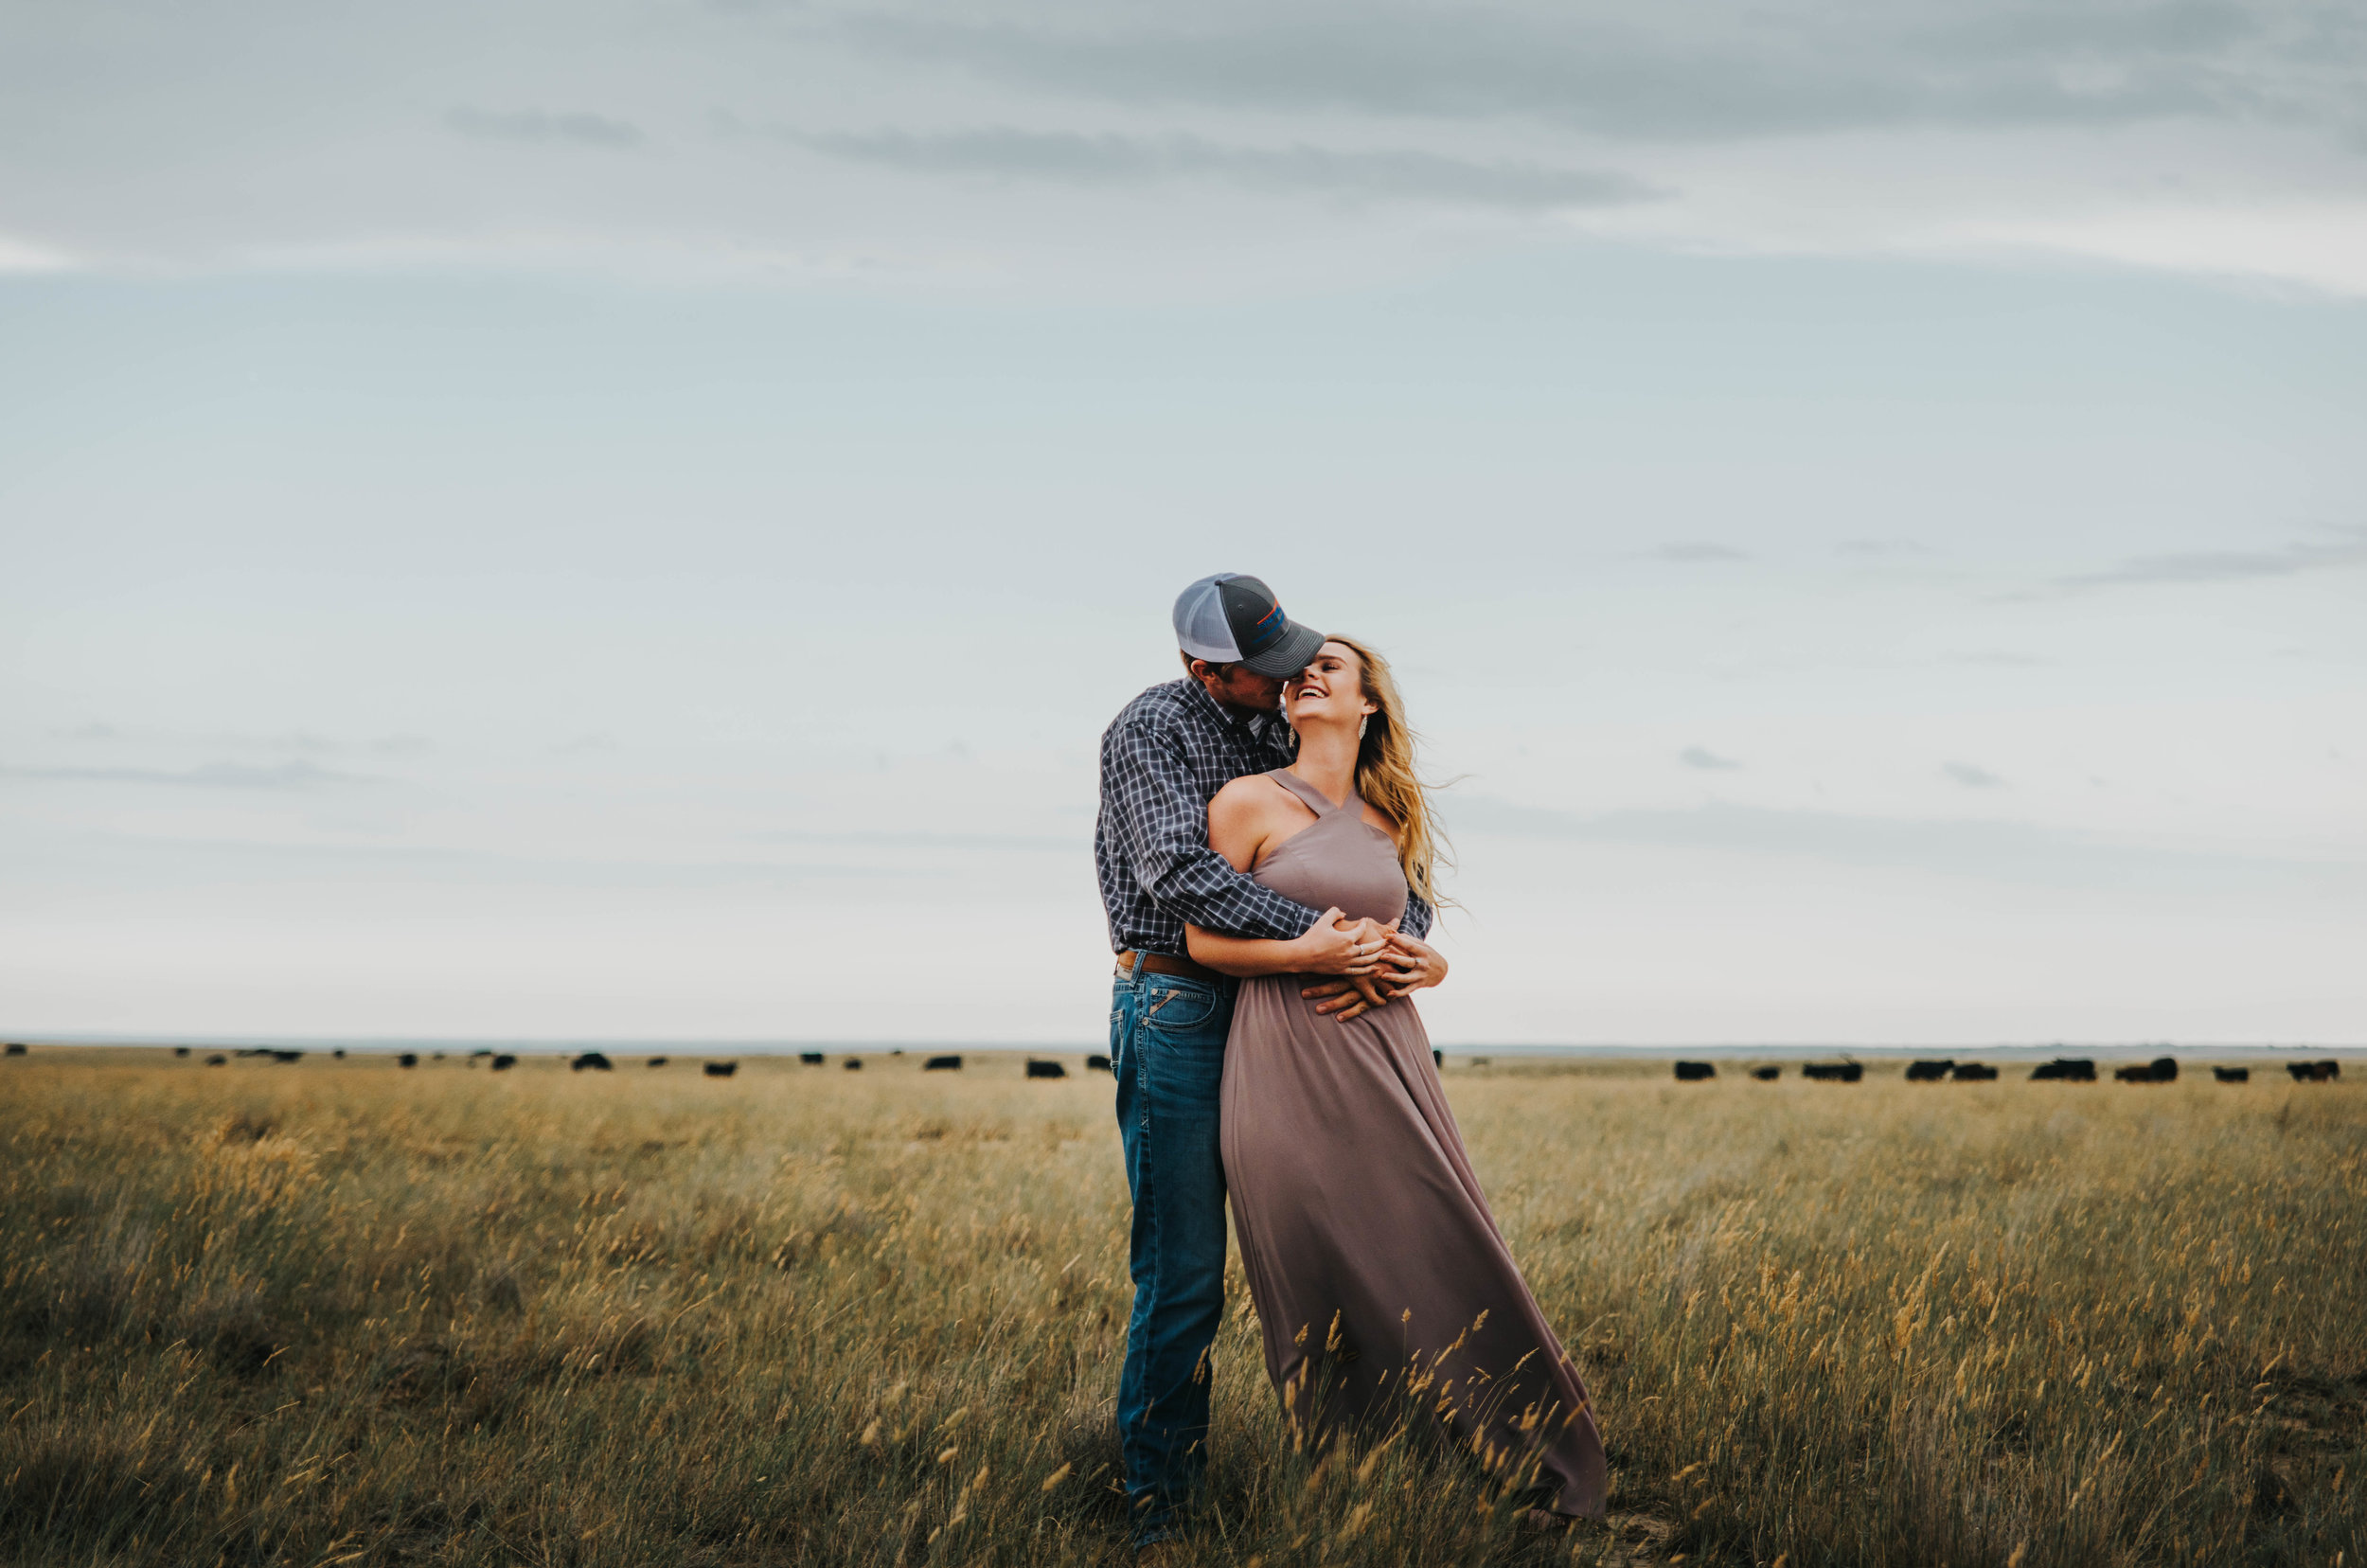 Miss. Miller's Photography | Colorado Wedding Photographer | Buckskin Bride | Western Engagement Photos | Country Engagement Photos | Country couples poses | Colorado Photographer | Looks Like Film | LuLus dresses | Ariat Jeans | Western Couple | Country Couple | Couples Photos | Engagement Inspiration